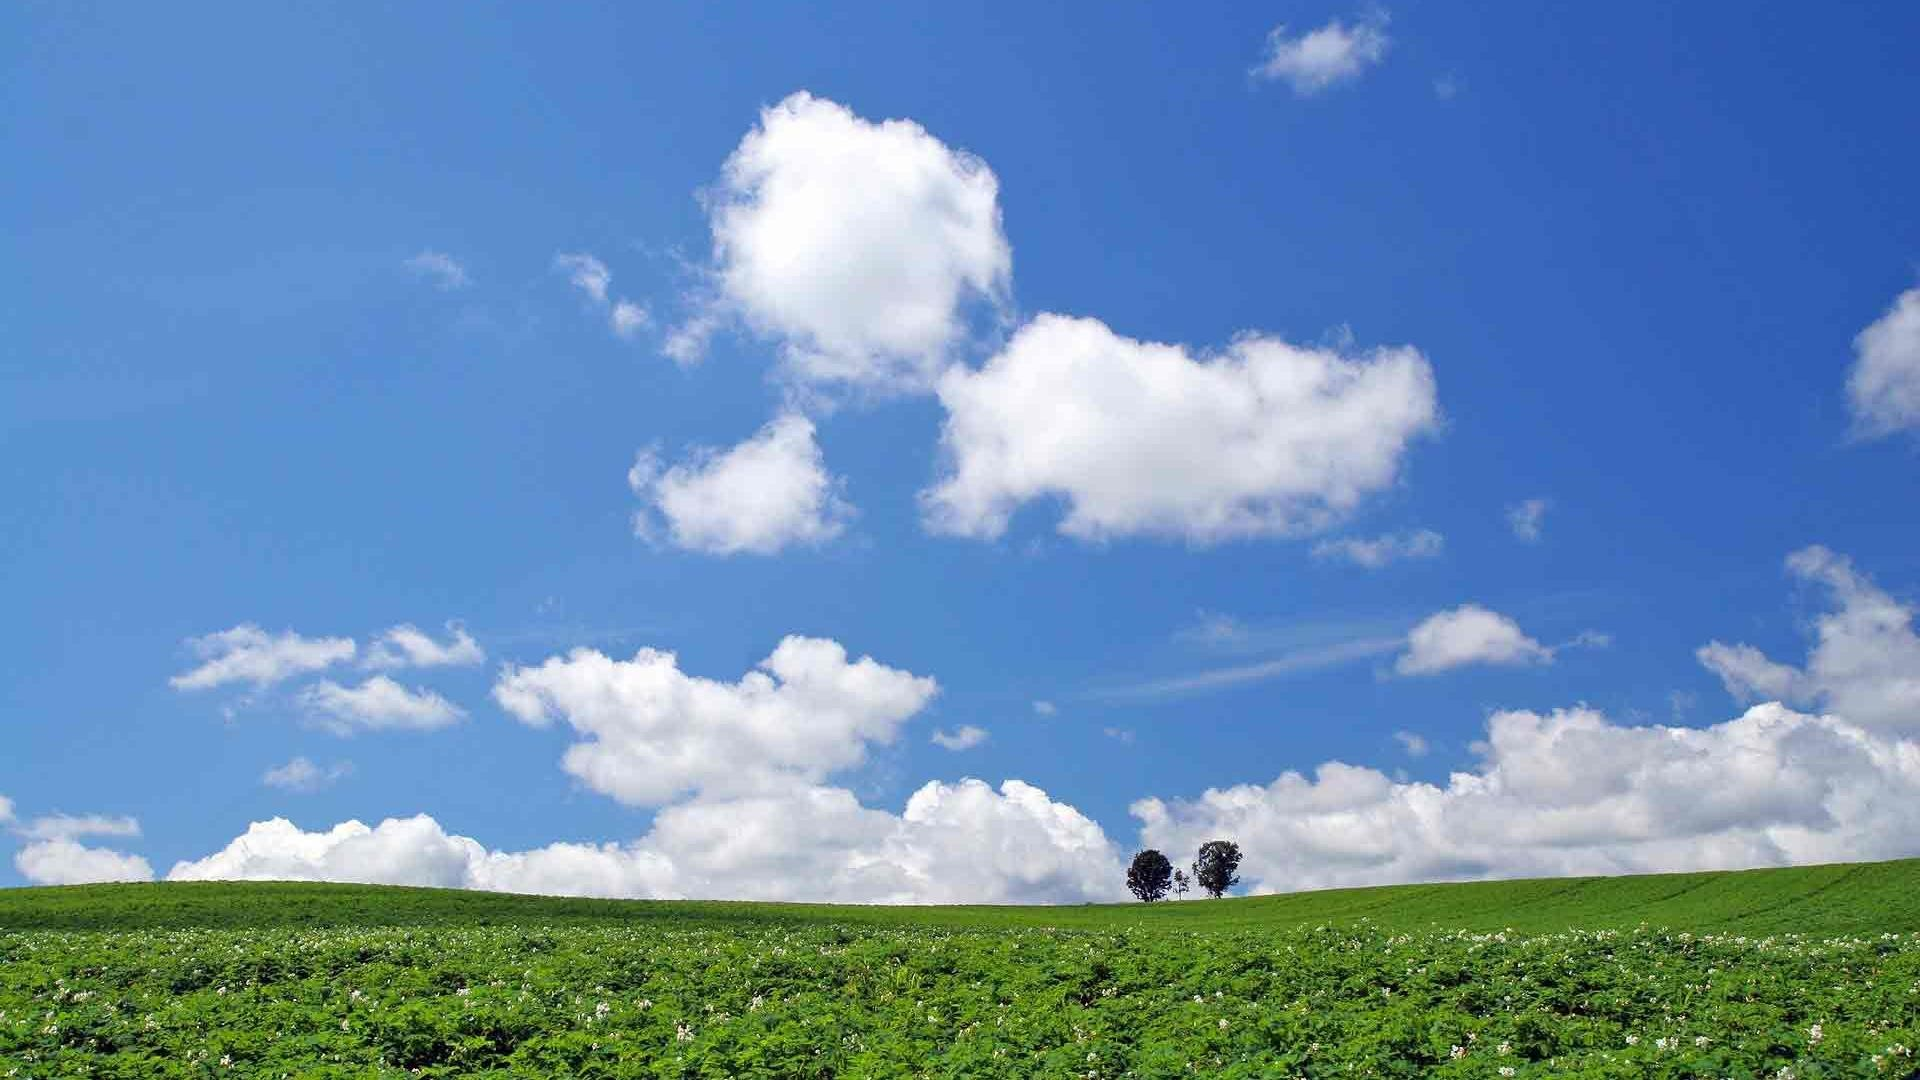 1920x1080 1440x9001280x800 · Hd white clouds in the blue sky scenic desktop  backgrounds